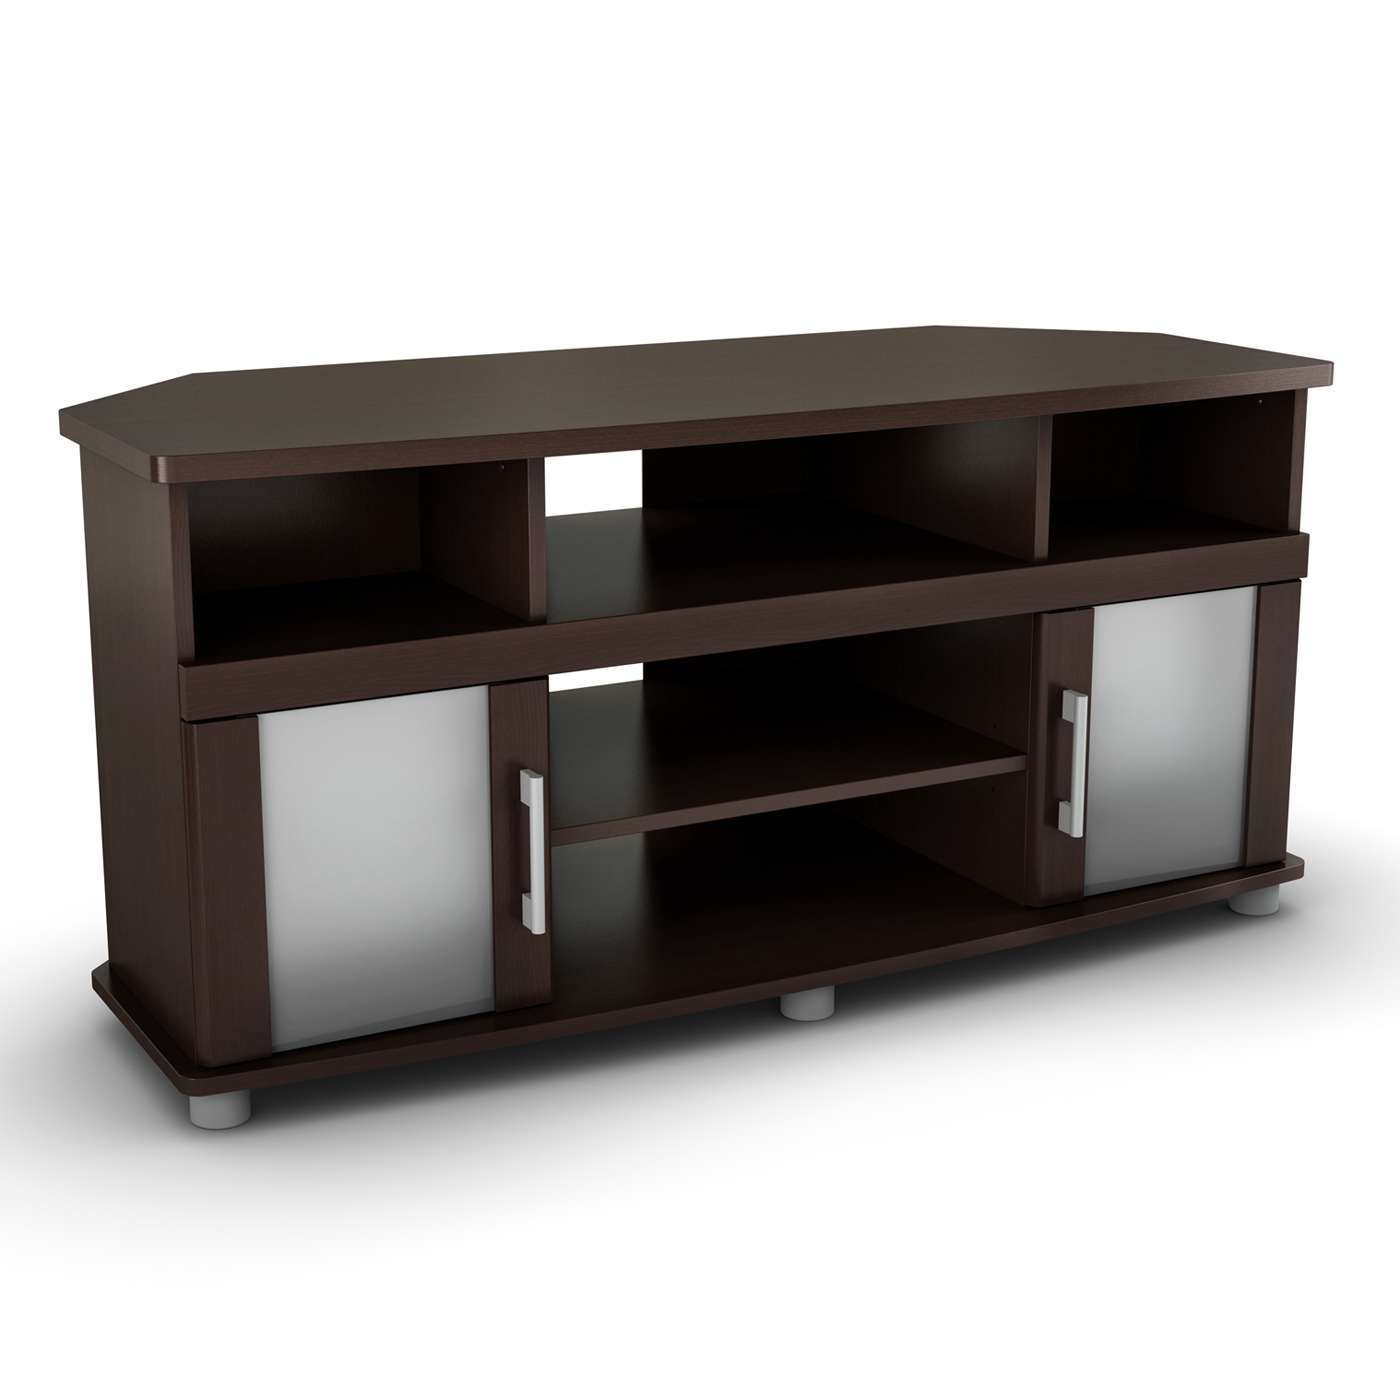 Jordy Nelson Tags : 43 Impressive Tv Unit With Stand Photos Design Intended For Low Corner Tv Stands (Gallery 12 of 20)